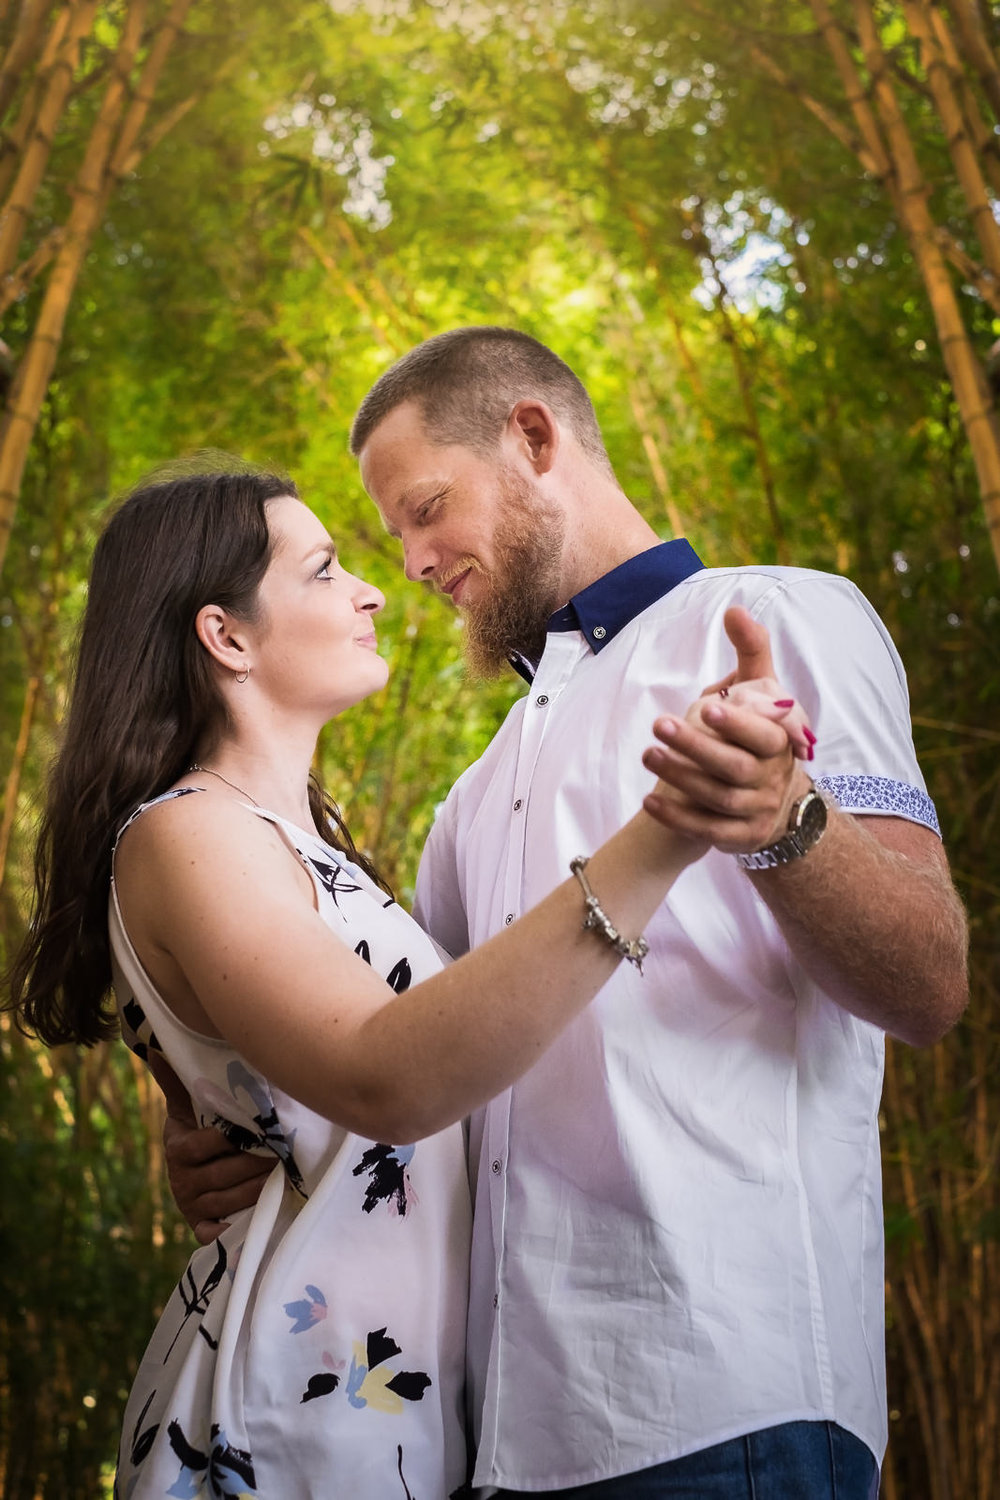 Engaged couple wearing white and blue complimentary shirts for portrait session in gardens